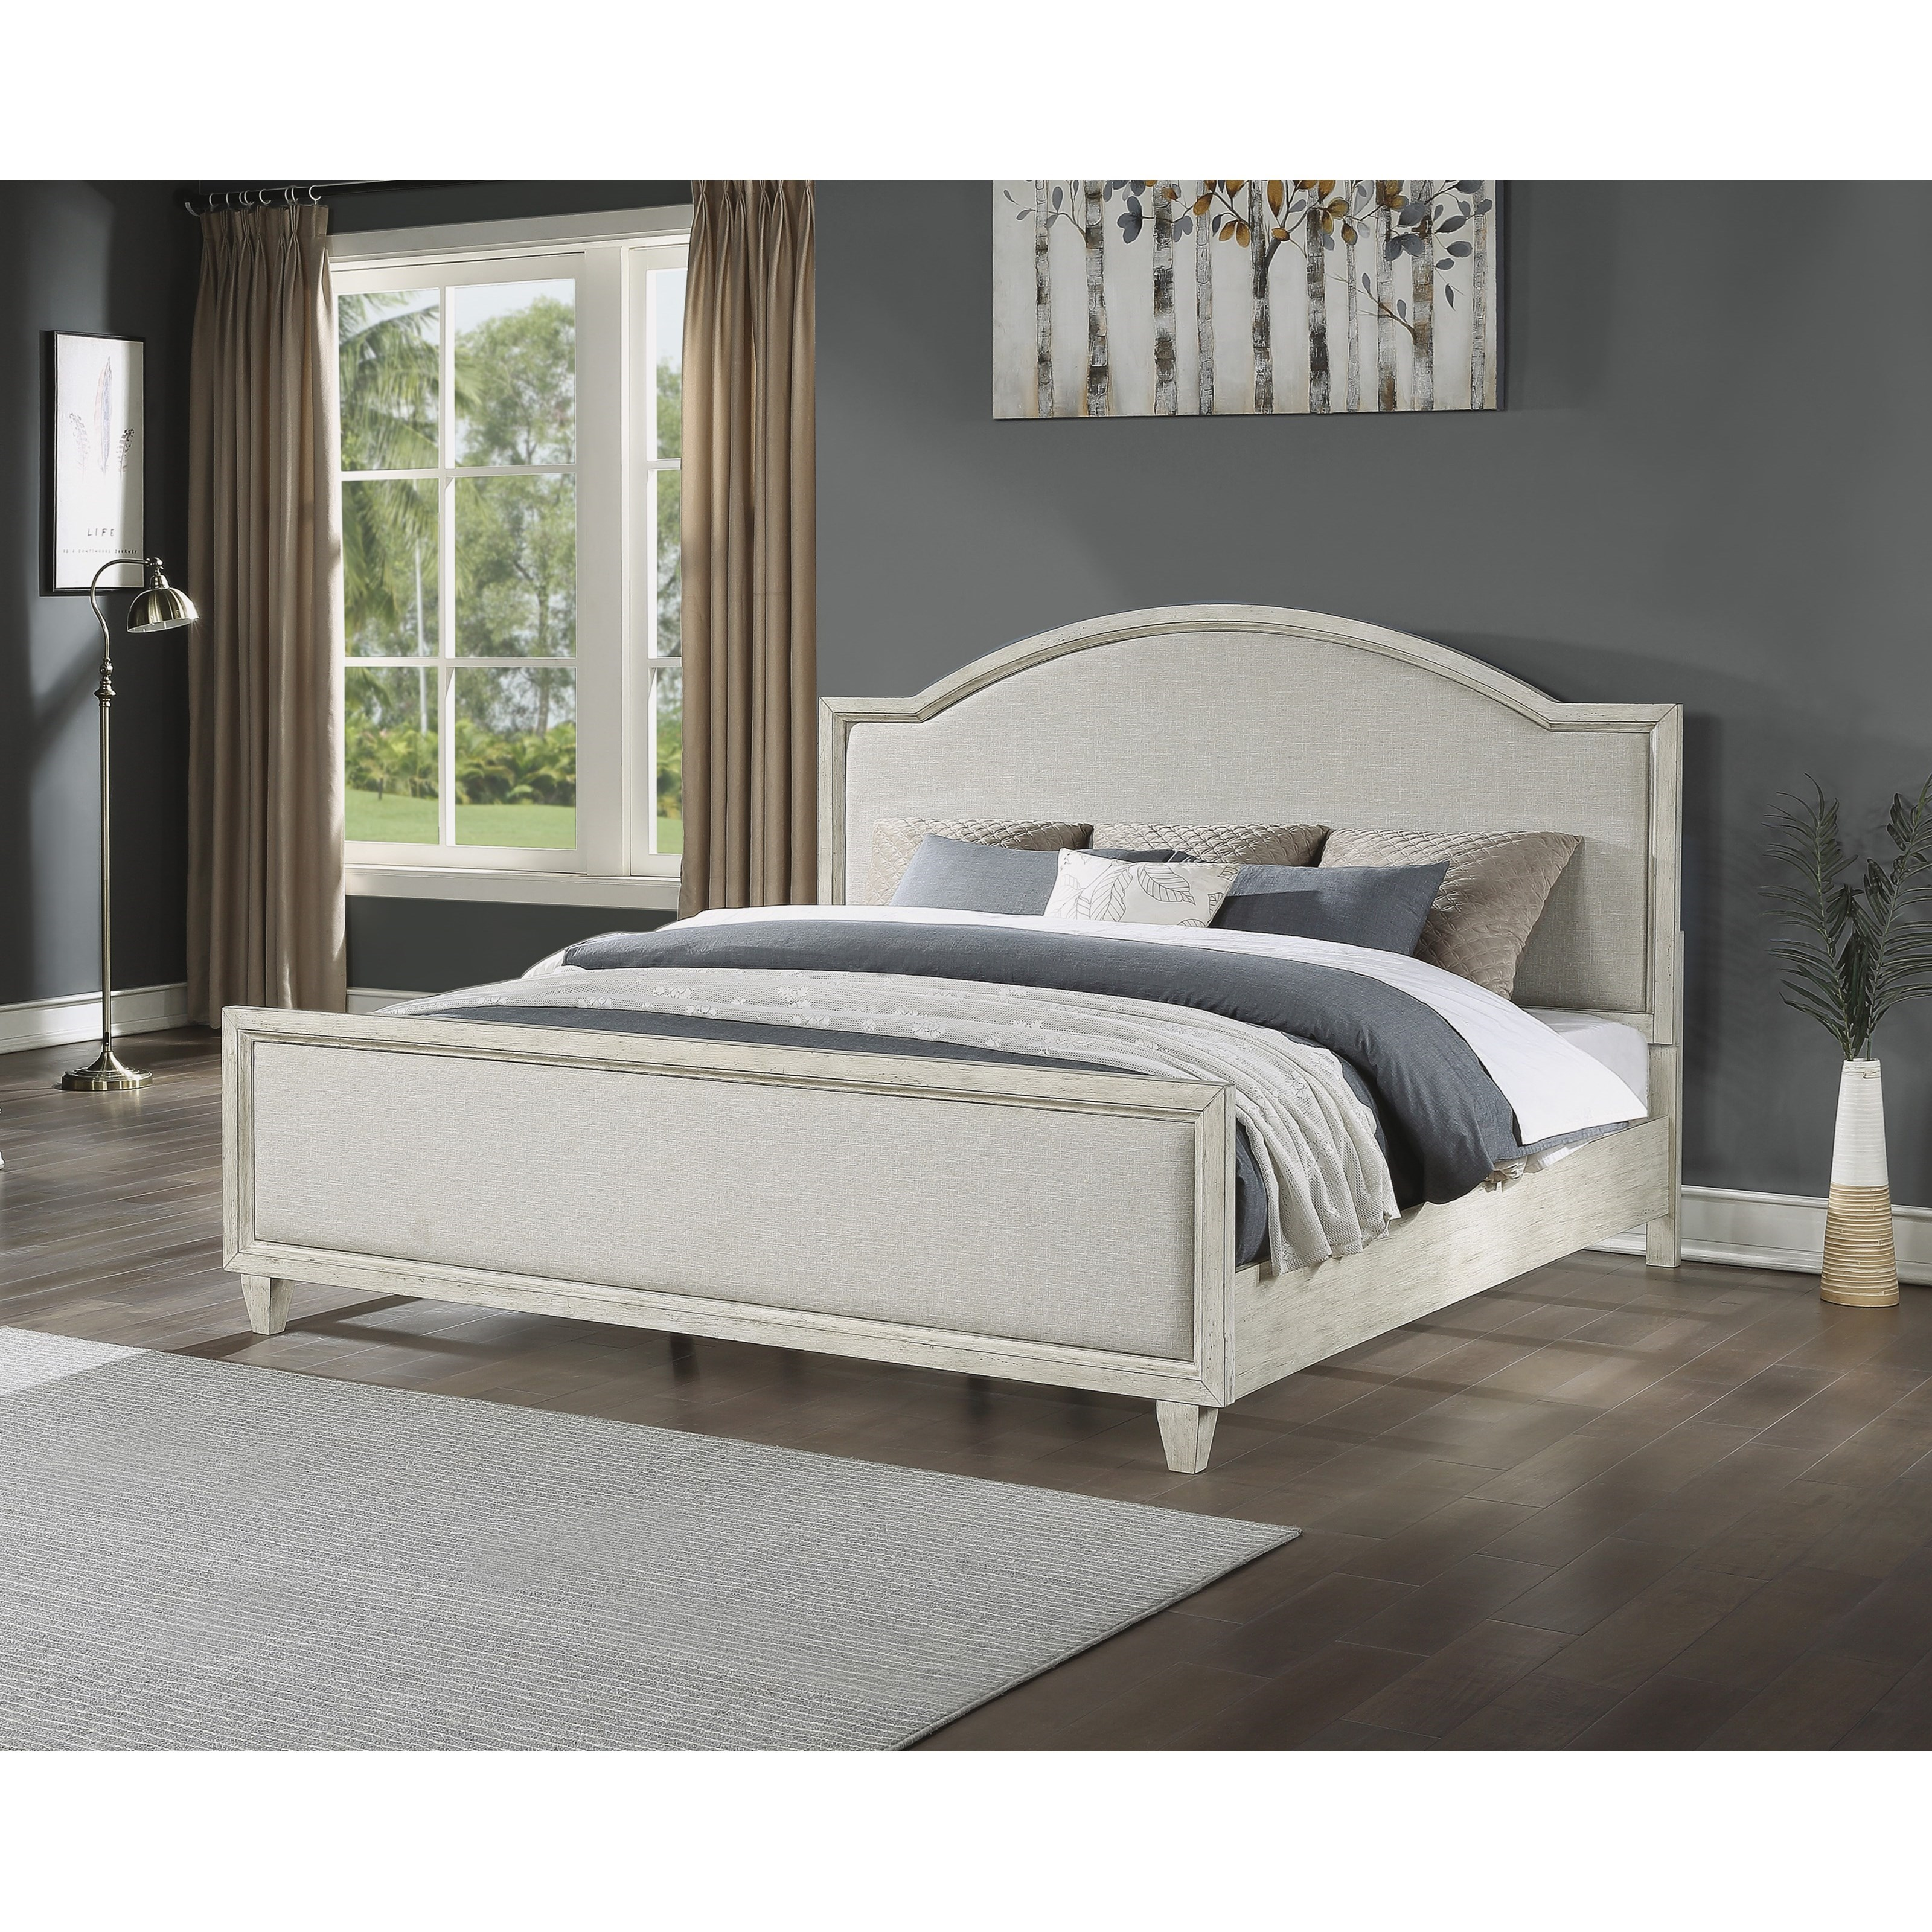 Gladys Gladys King Upholstered Bed by Flexsteel Wynwood Collection at Morris Home